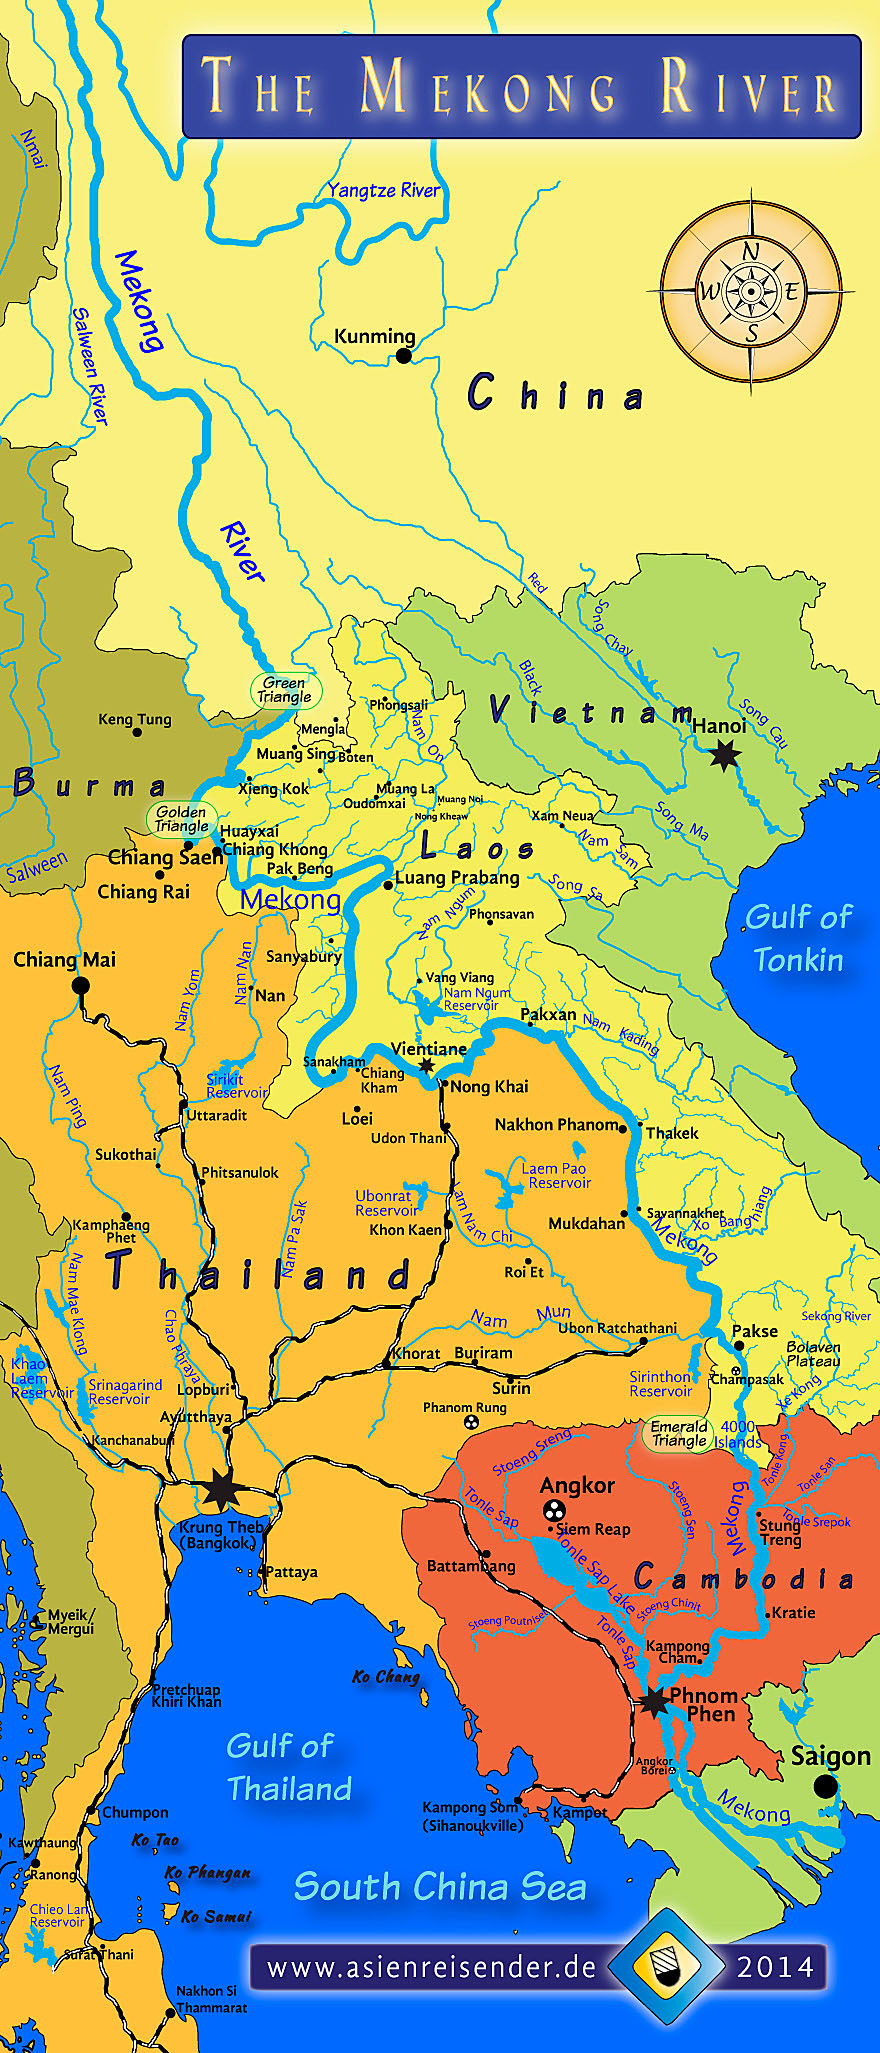 Map of the Mekong River by Asienreisender